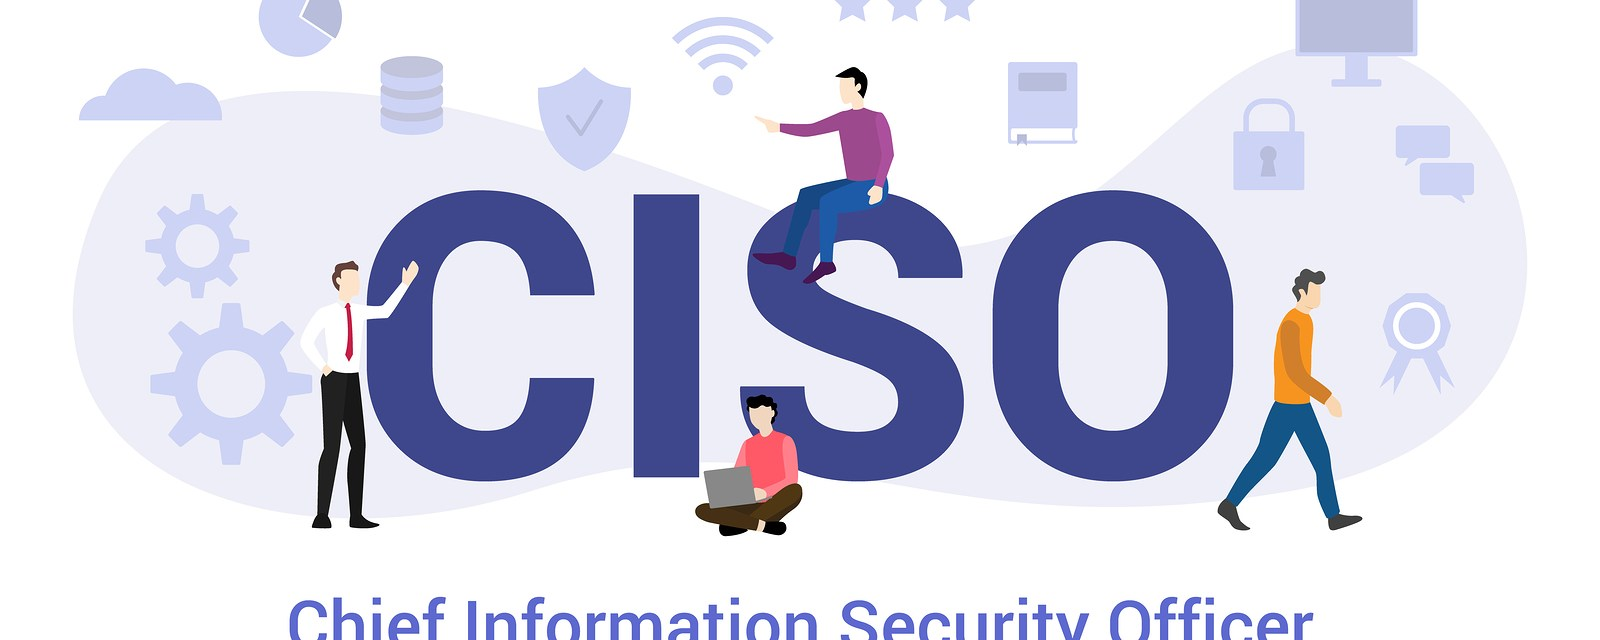 Role of CISOs in Organizations